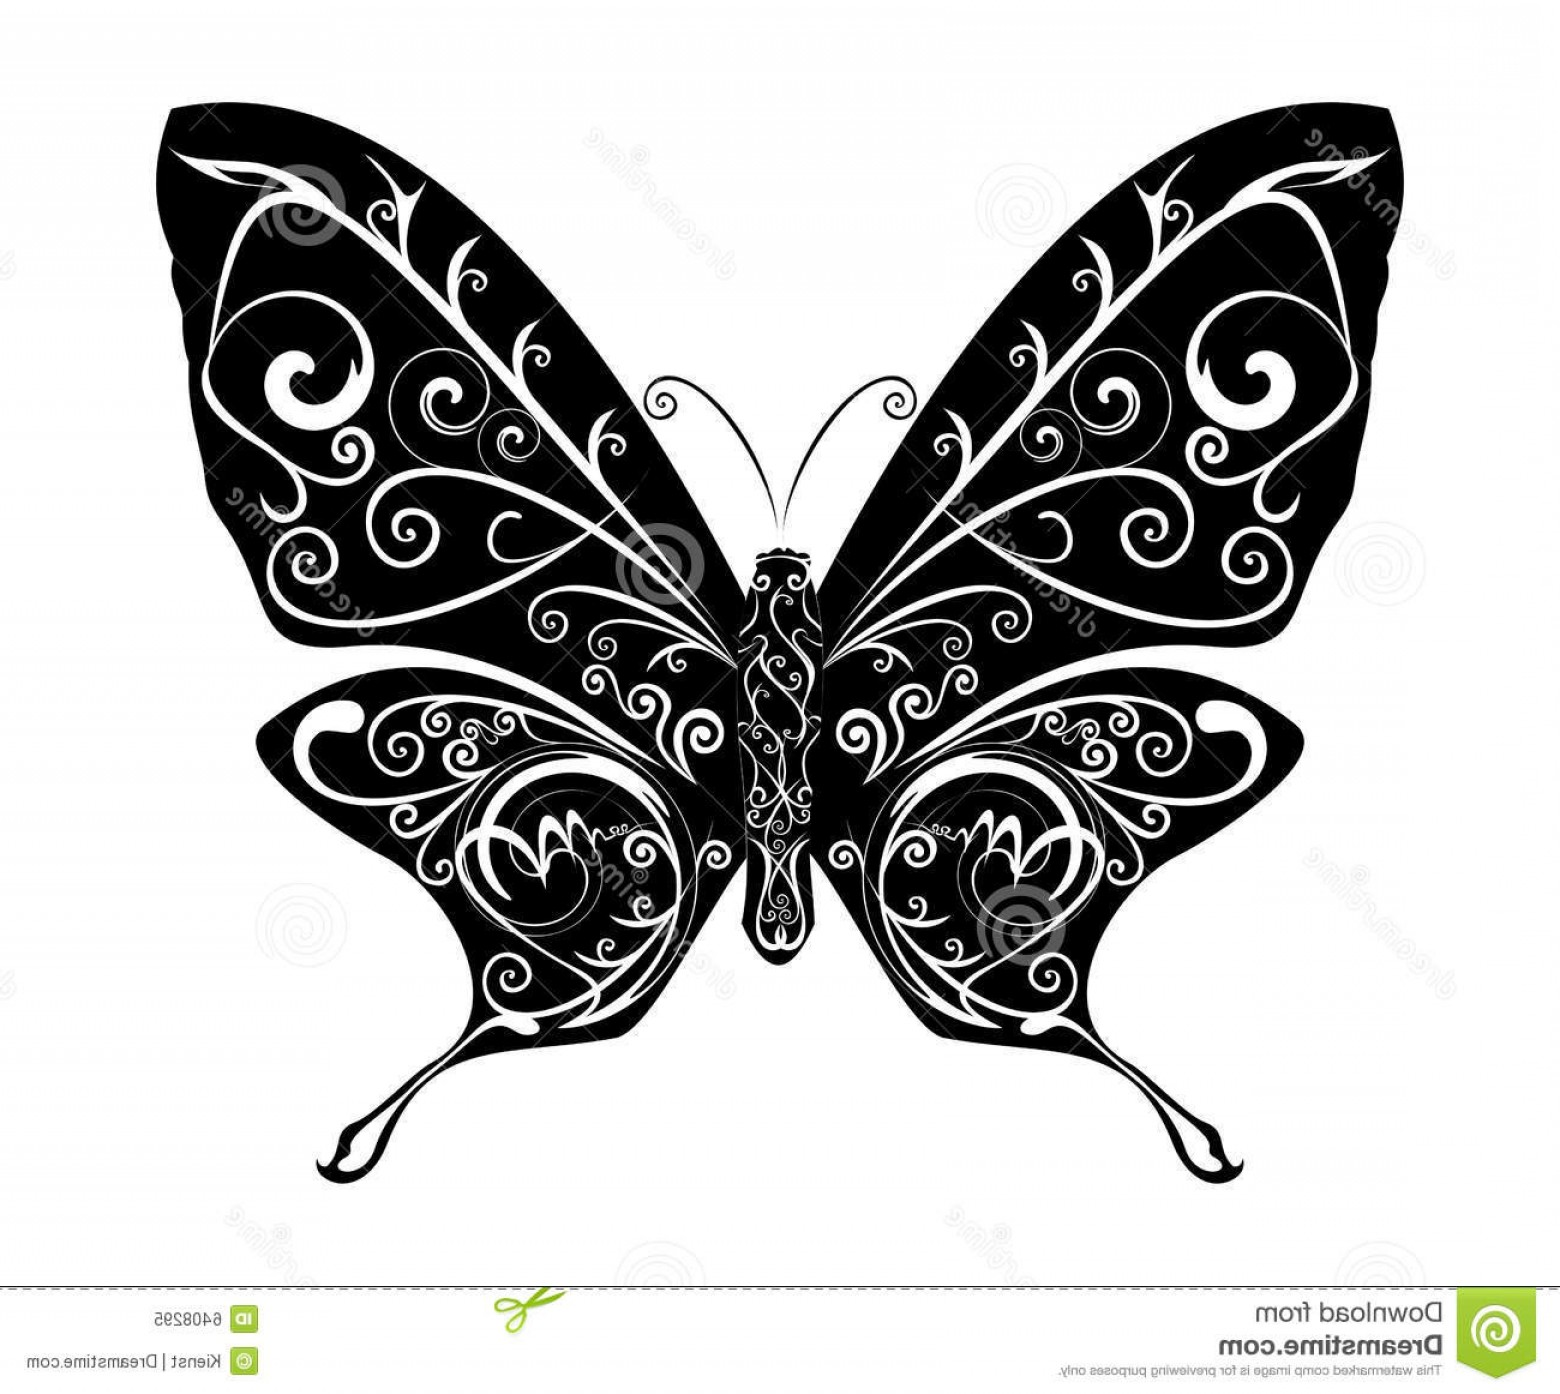 Butterly Vector: Royalty Free Stock Photo Abstract Butterfly Vector Image